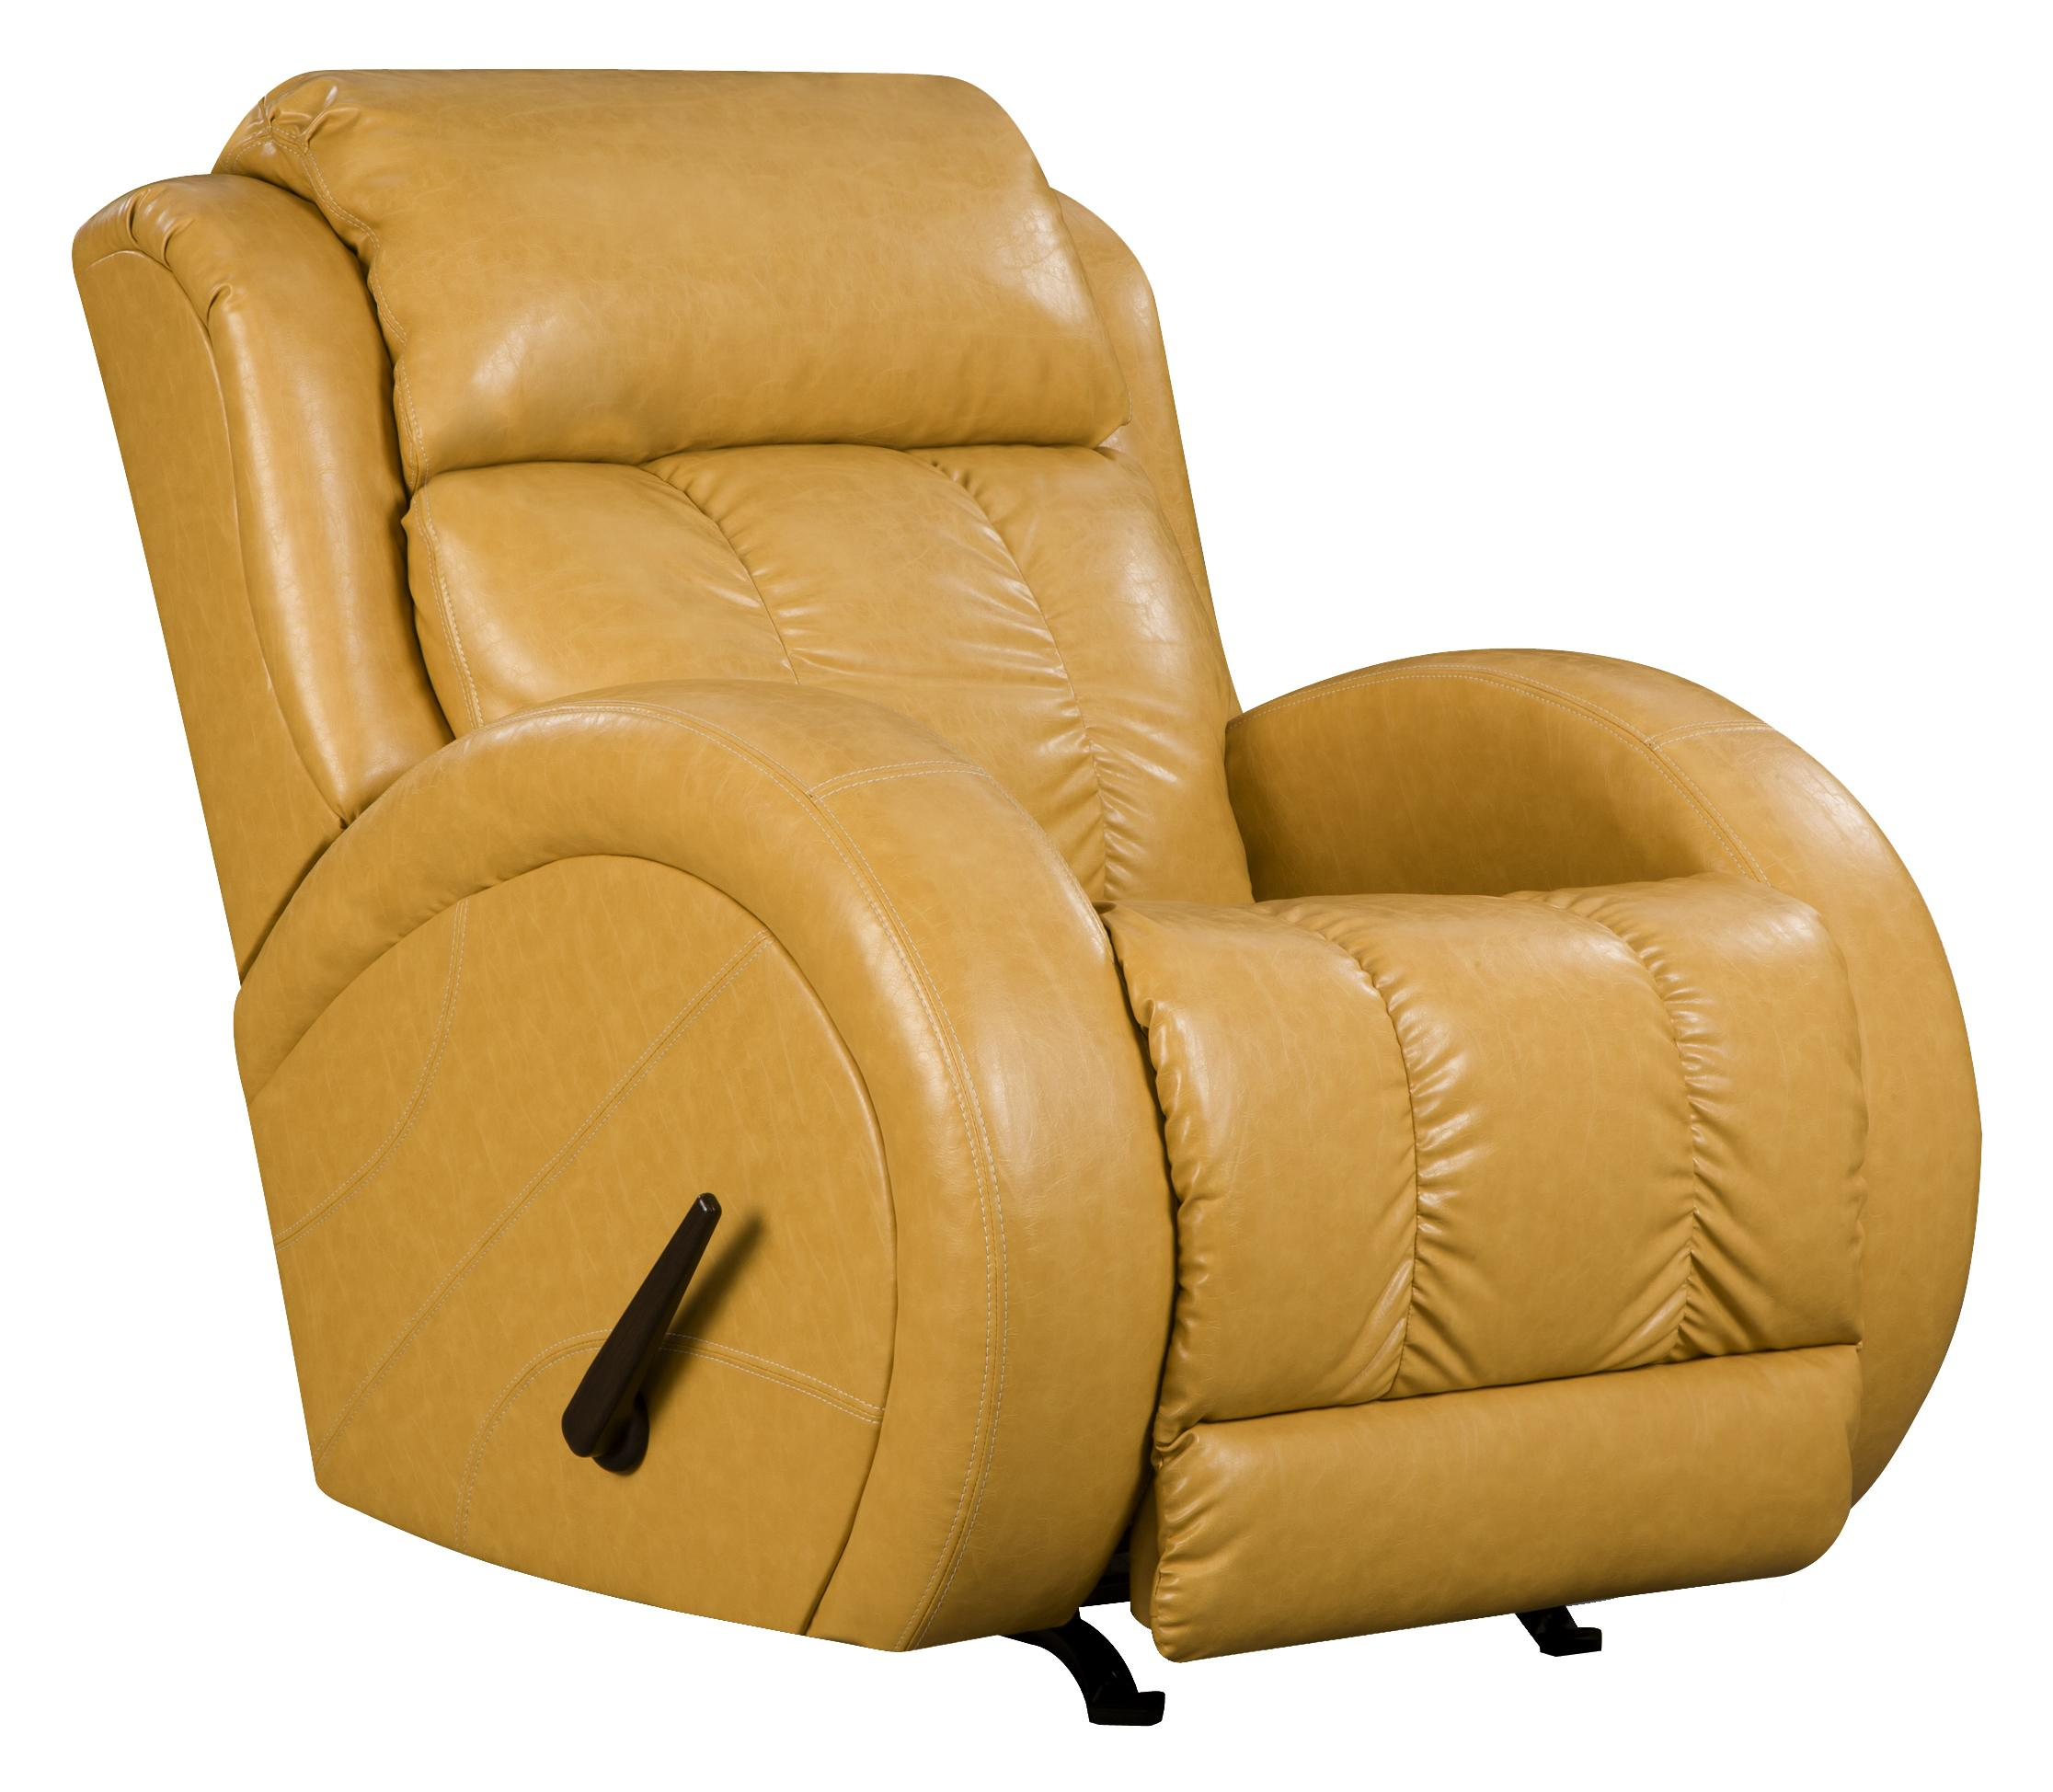 lay flat recliner chairs tan accent chair southern motion recliners wall with sport style fmg